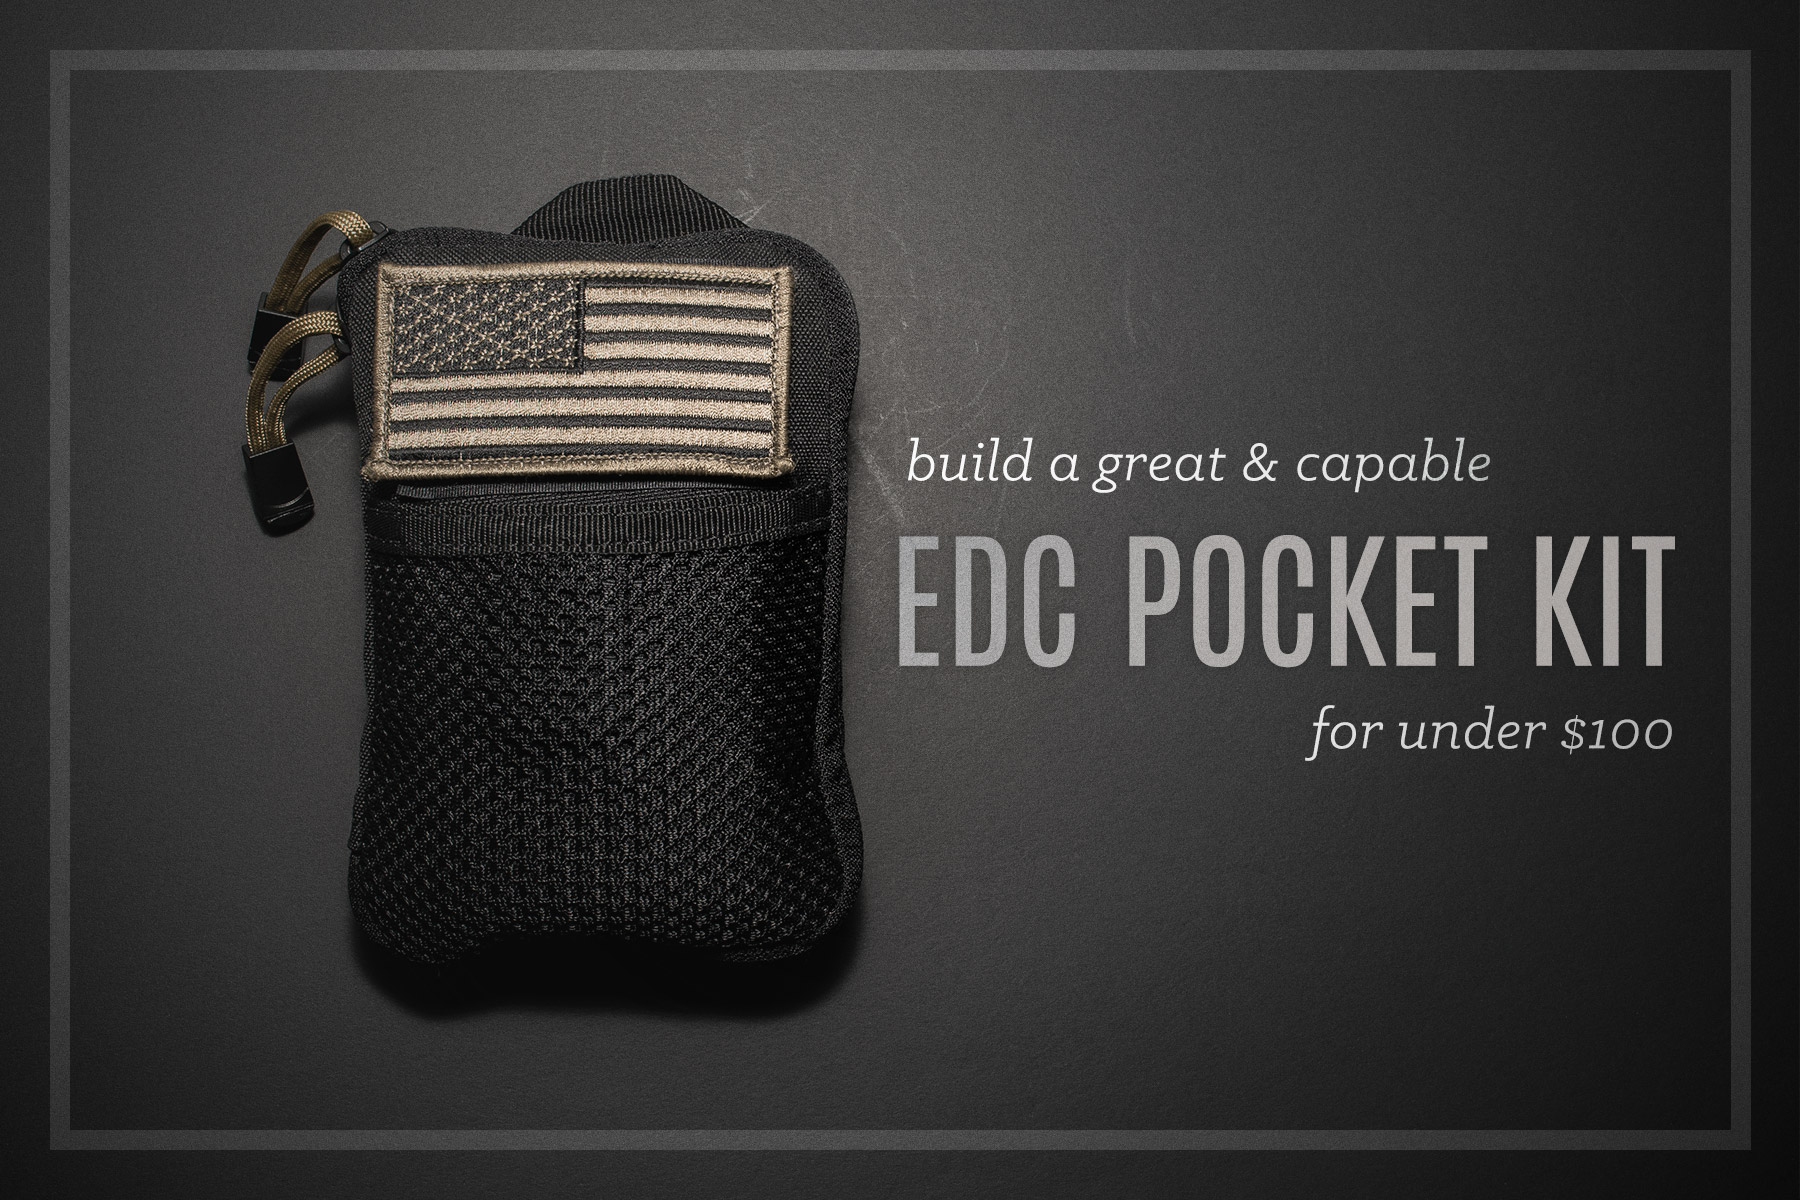 Kit Cars To Build Yourself >> Build an EDC Kit for Under $100 • Condor Pocket Pouch